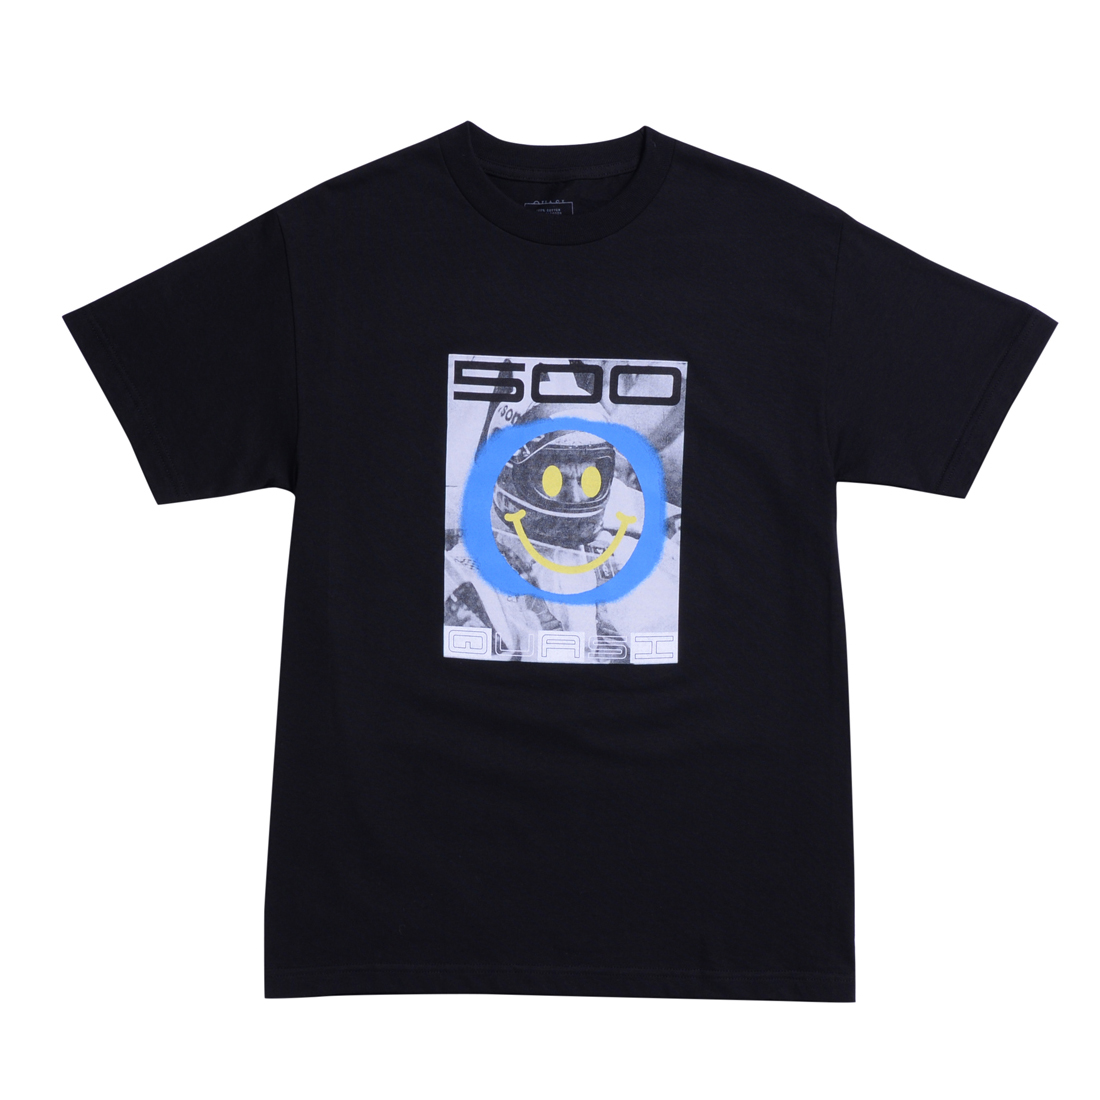 QSI TEE INDY BLK M - Click to enlarge